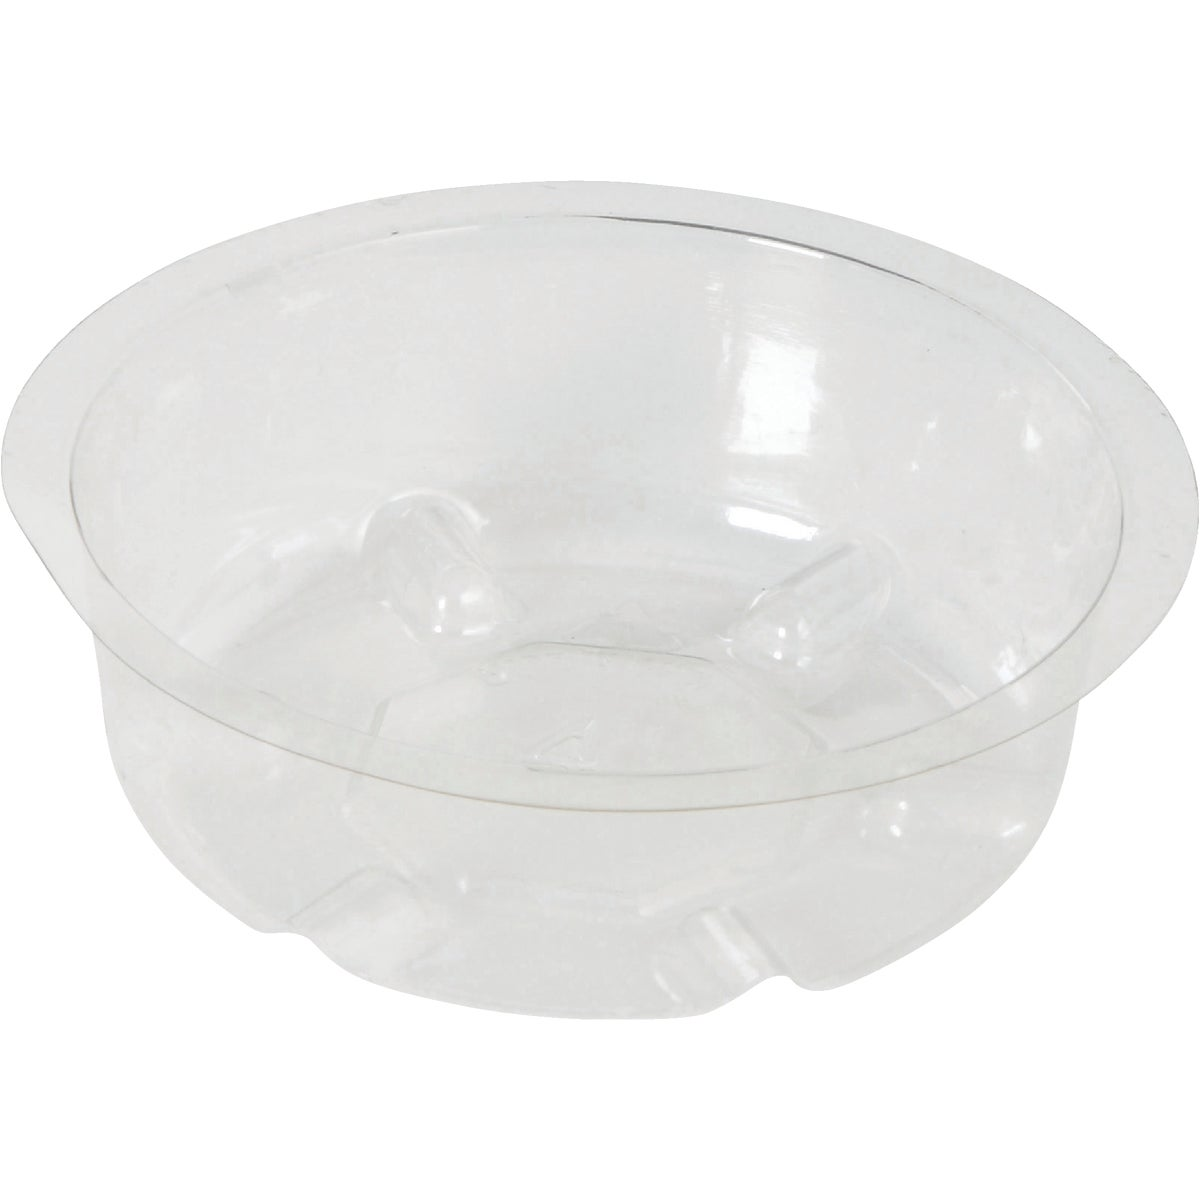 "4"" CLEAR VINYL SAUCER - VS4 by Woodstream Corp"